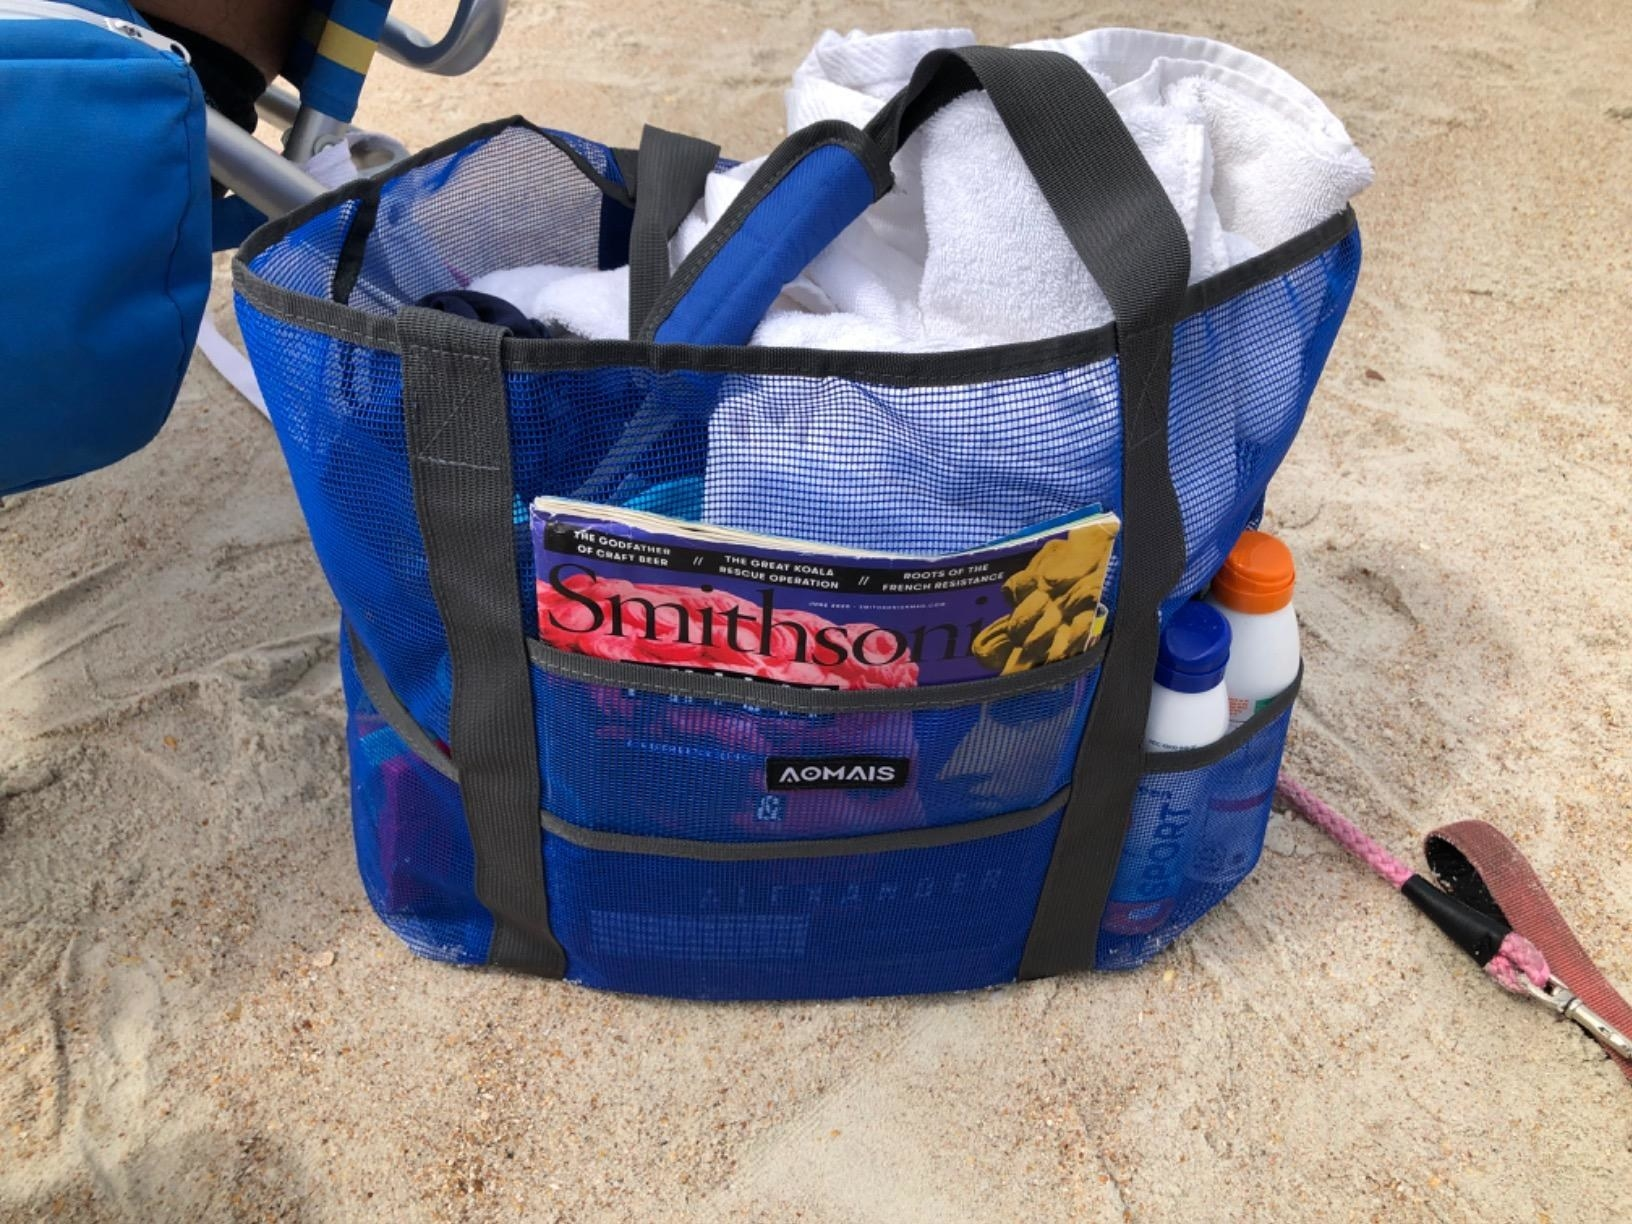 Reviewer's blue beach tote stocked with sunscreen and towels on the sand